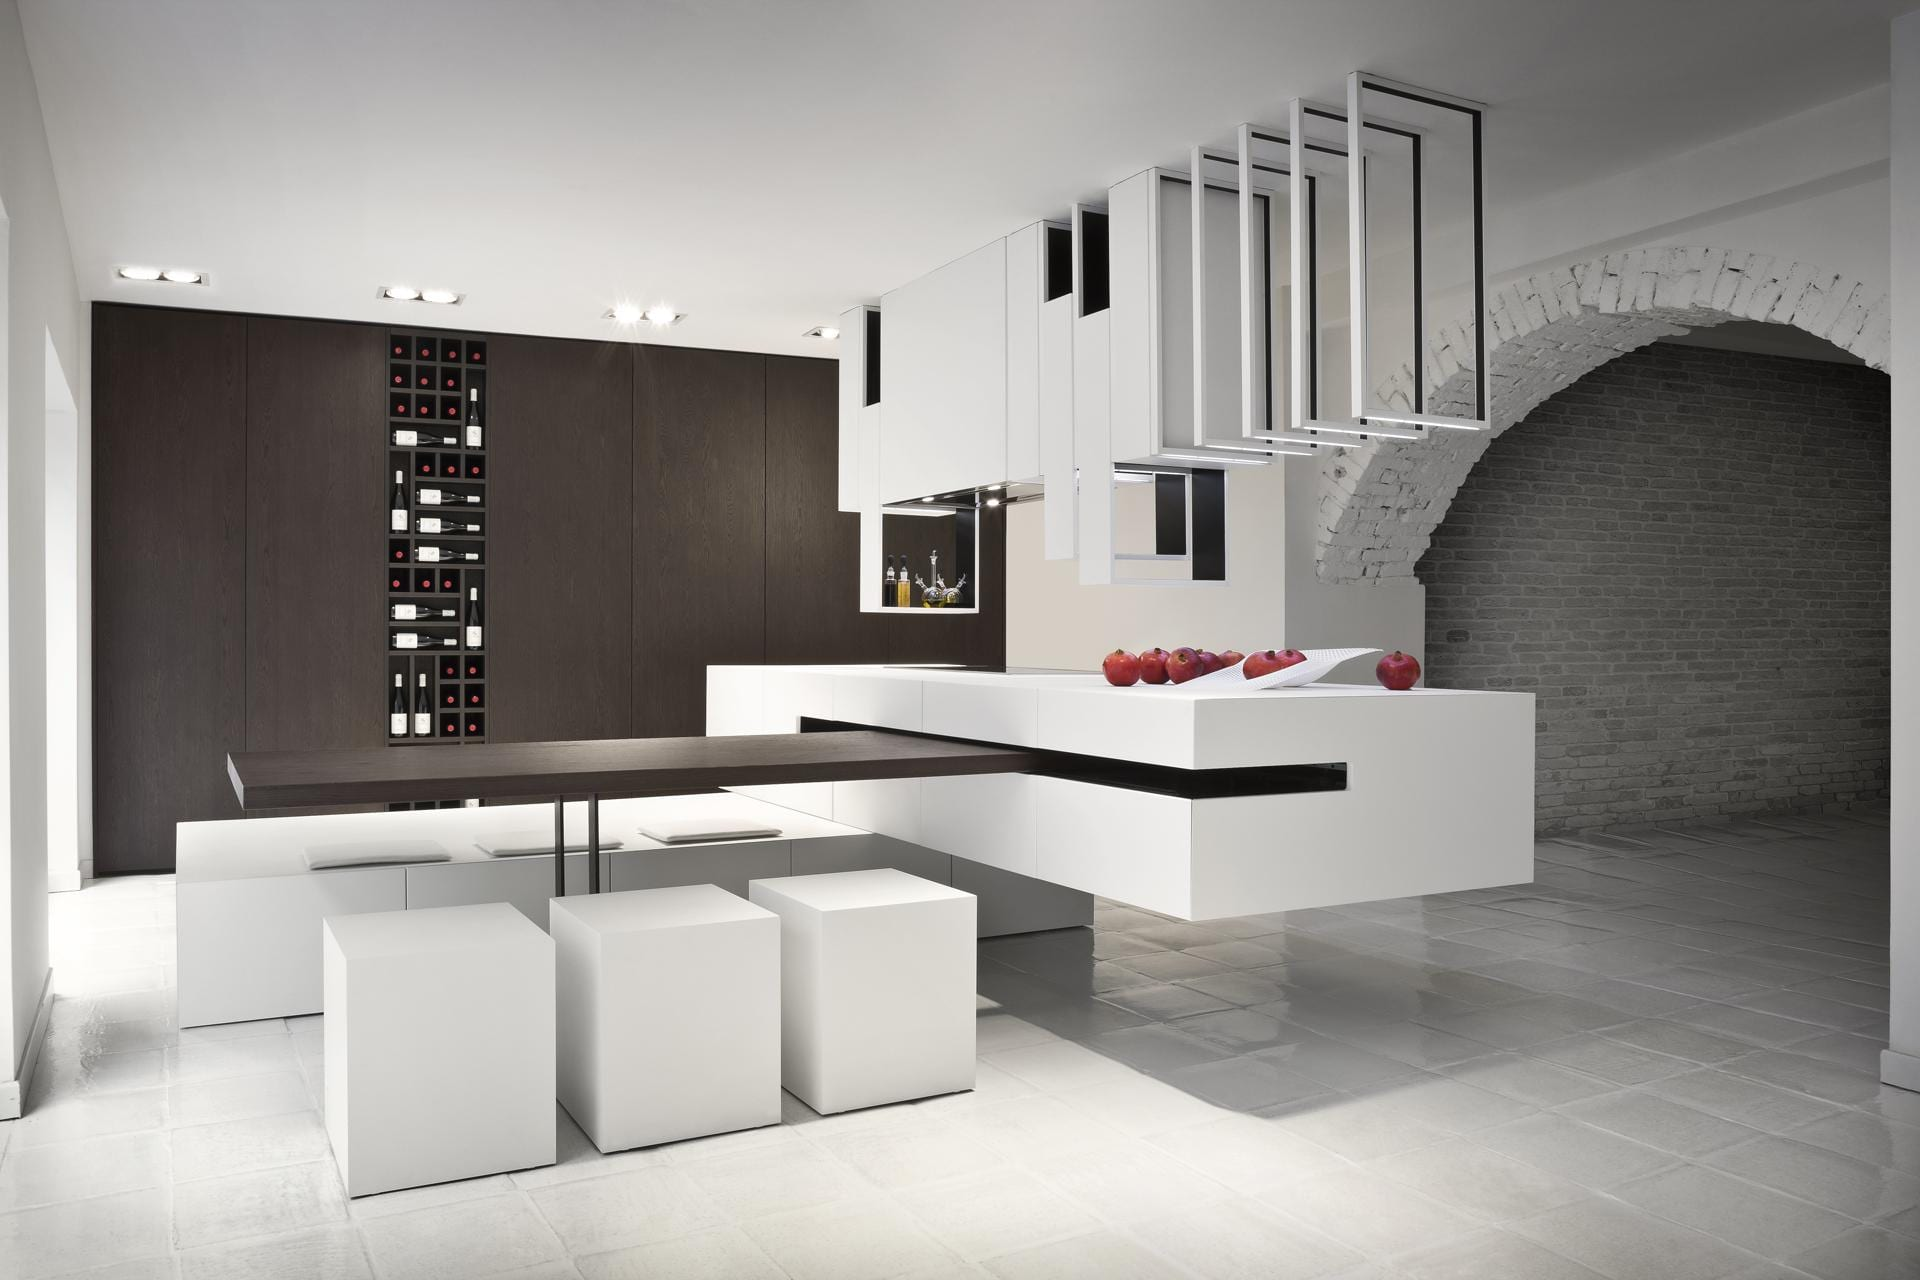 Eine moderne kochinsel f r luxuri se k chen freshouse for Trends muebles